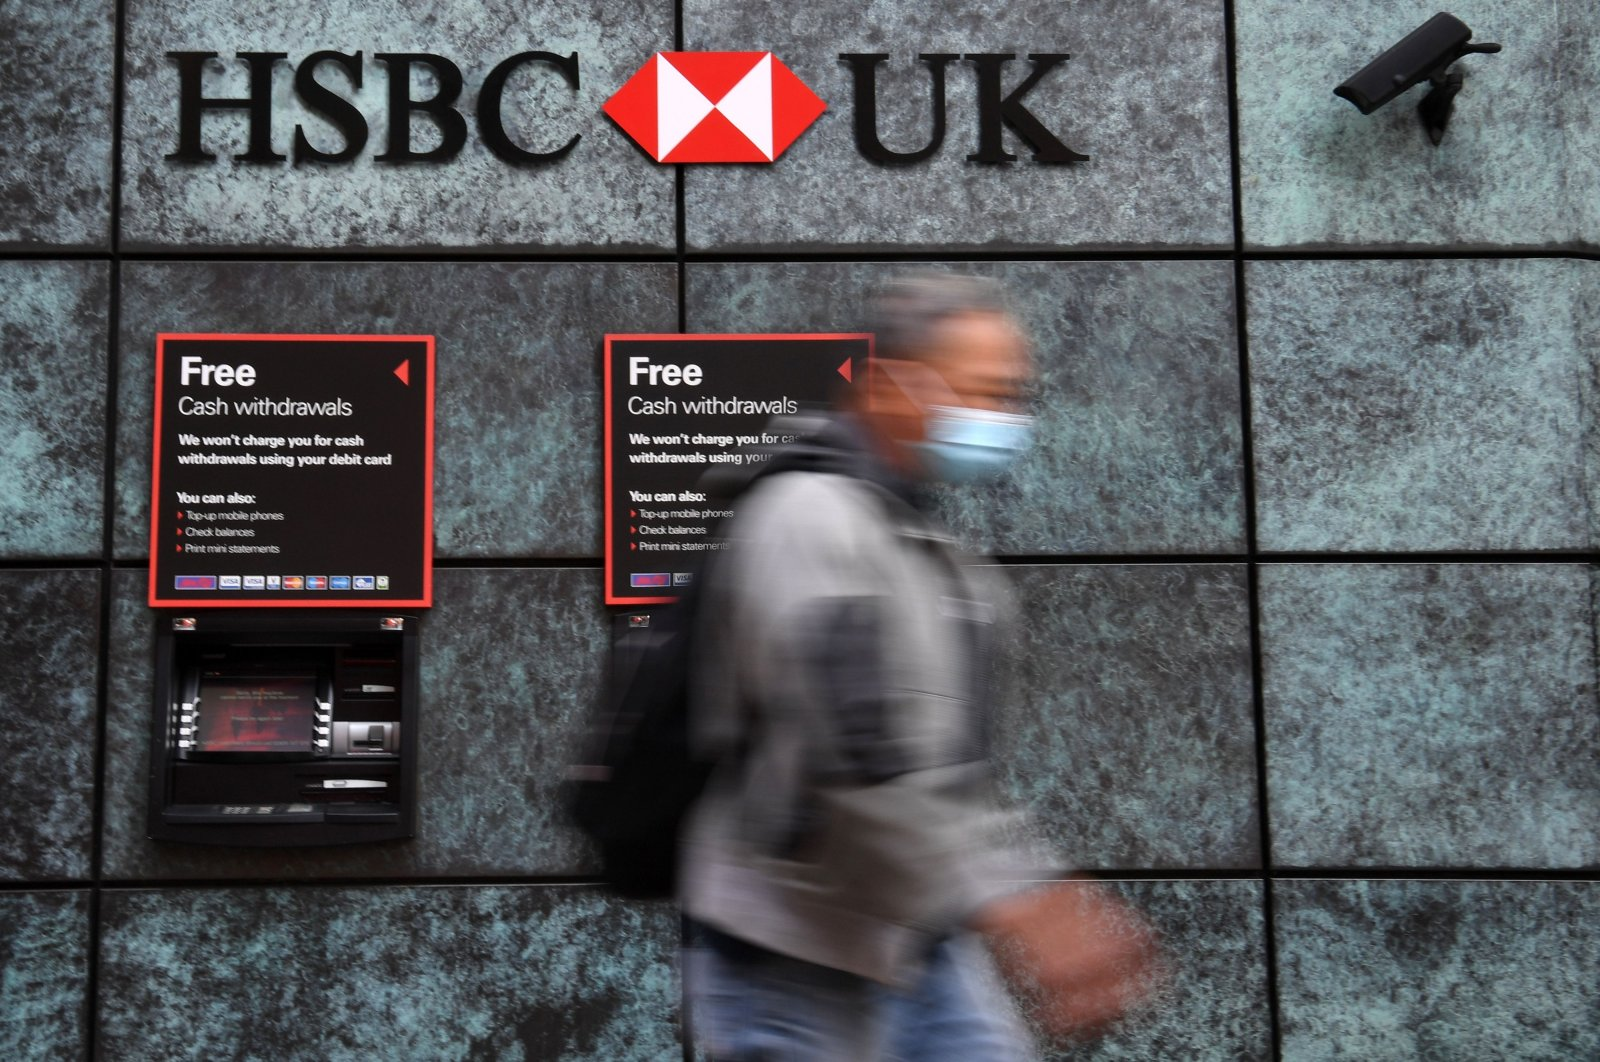 A pedestrian wearing a face mask or covering due to the COVID-19 pandemic walks past a branch of an HSBC bank in central London, Britain, Aug. 3, 2020. (AFP Photo)